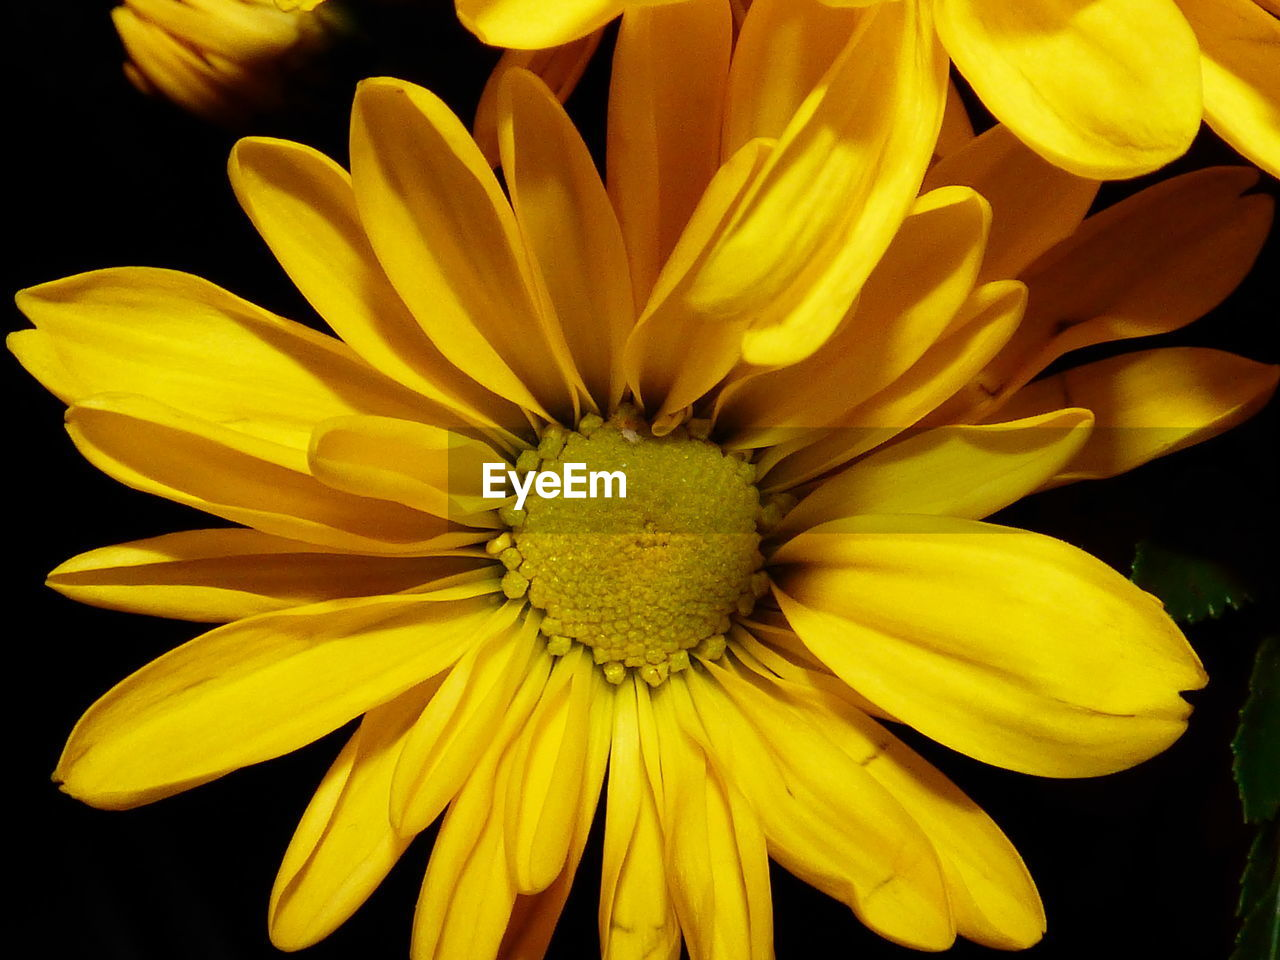 flower, petal, fragility, flower head, yellow, beauty in nature, growth, nature, freshness, pollen, plant, close-up, blooming, no people, day, gazania, outdoors